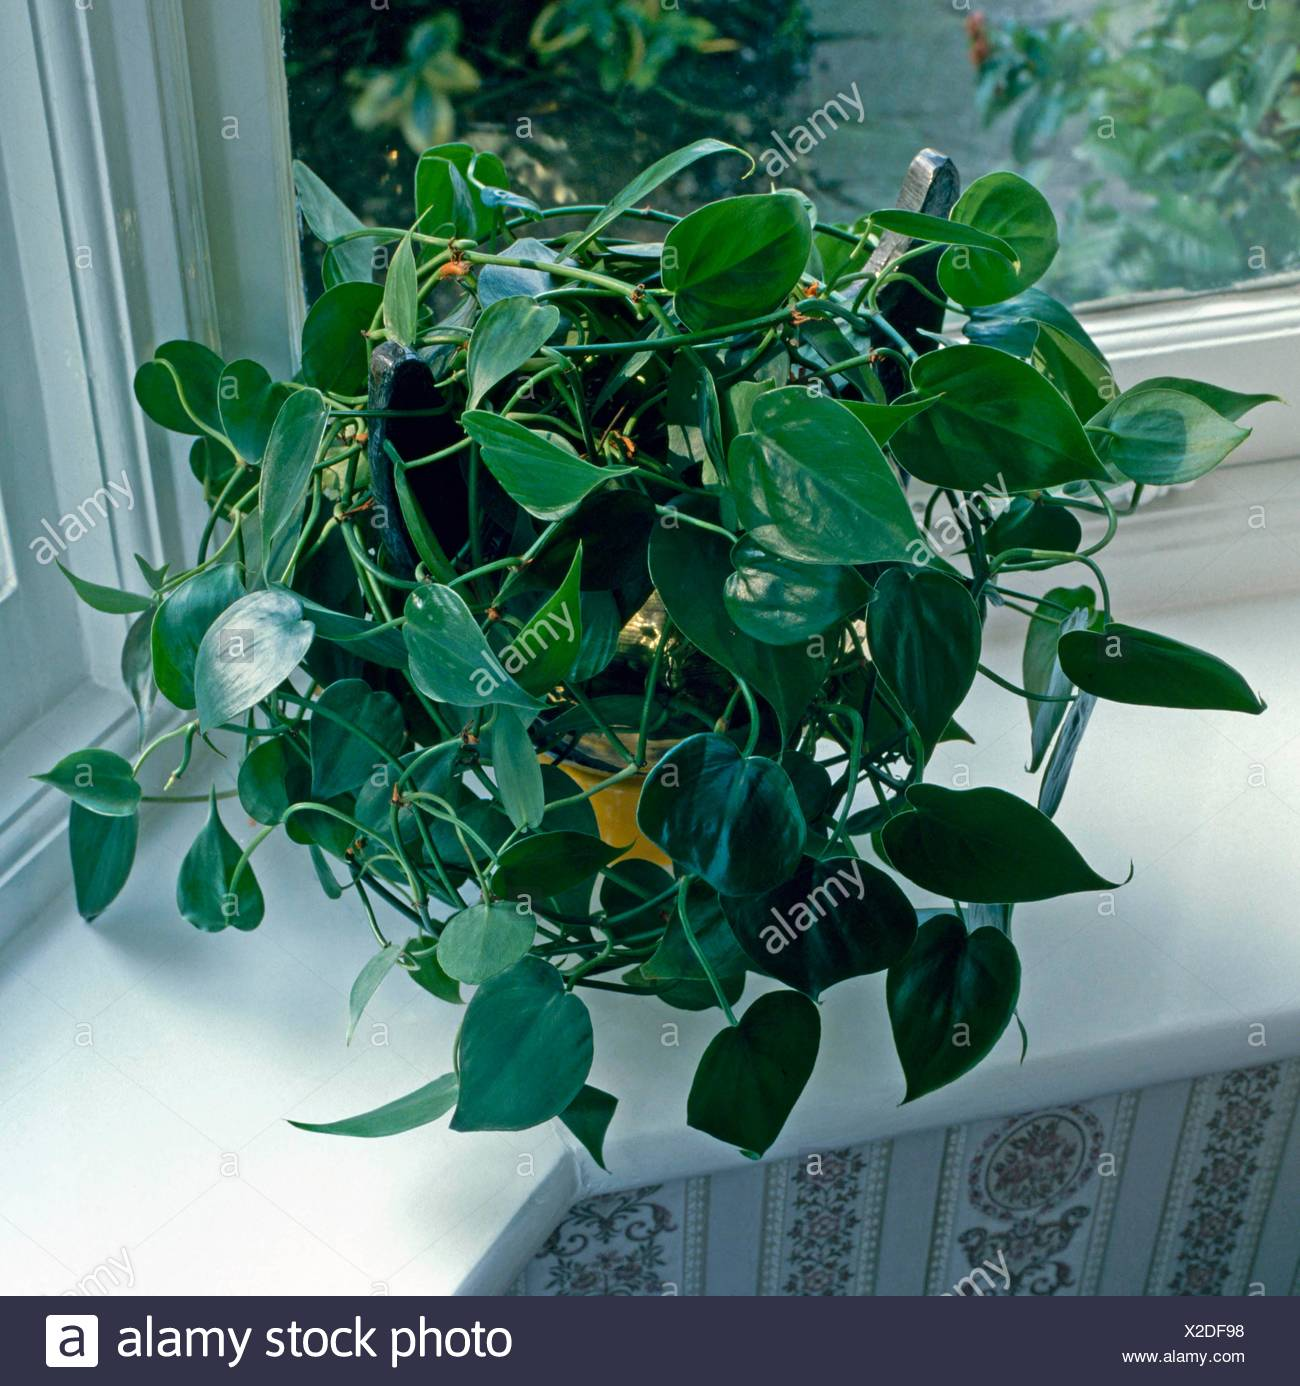 Philodendron Scandens Heart Leaf Philodendron Hps053761 Stock Photo Alamy